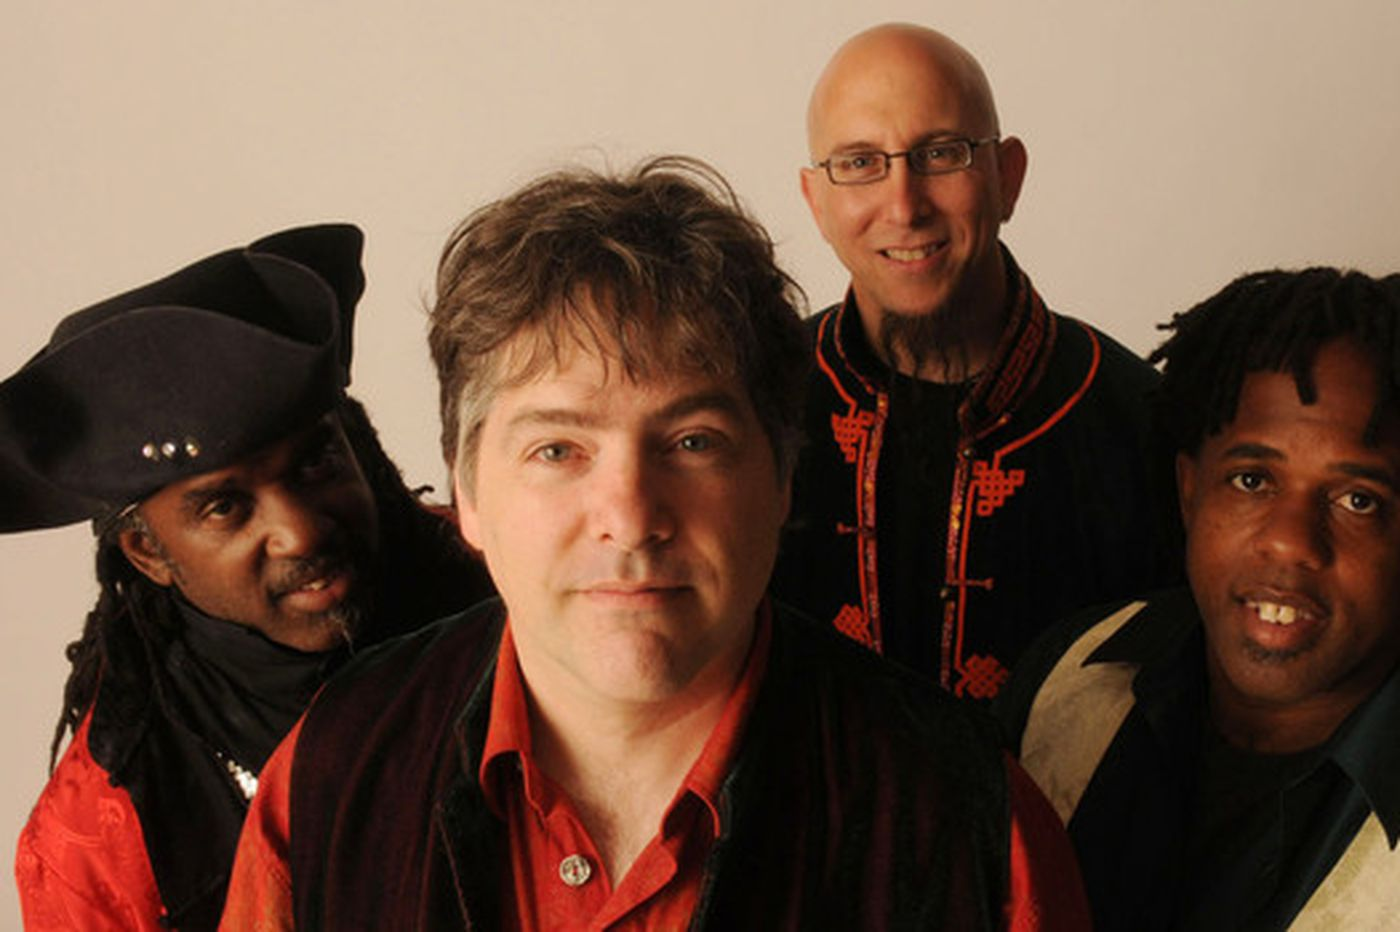 Bela Fleck gets 'a little crazy' with his creative holiday album